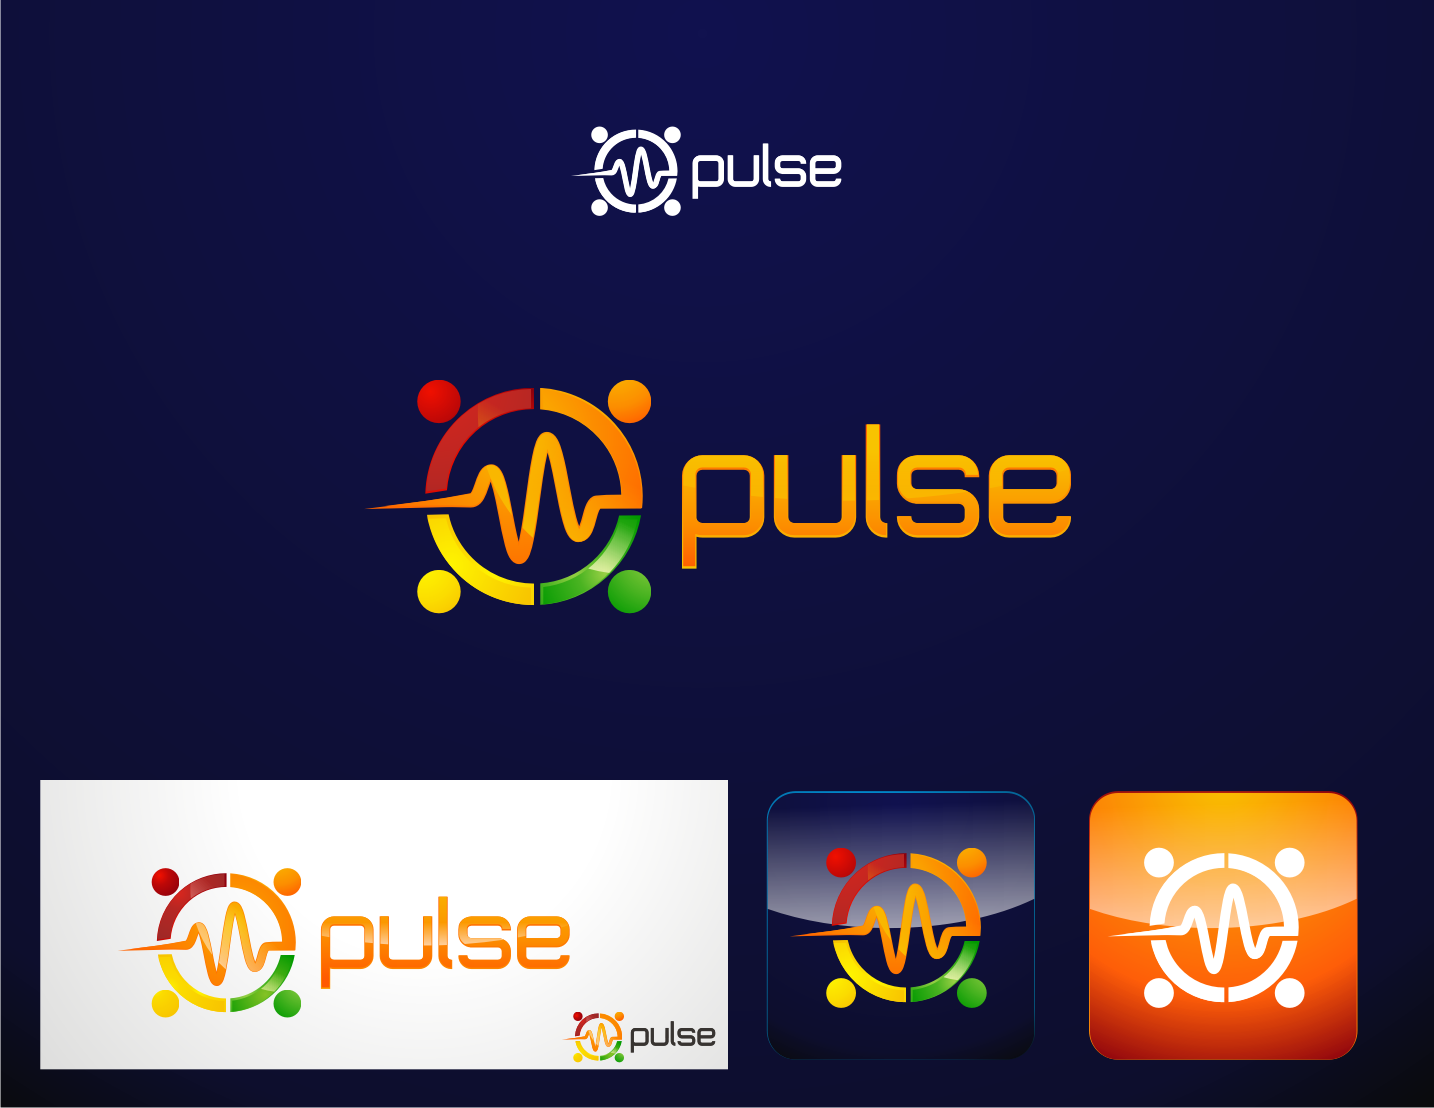 New logo wanted for Pulse